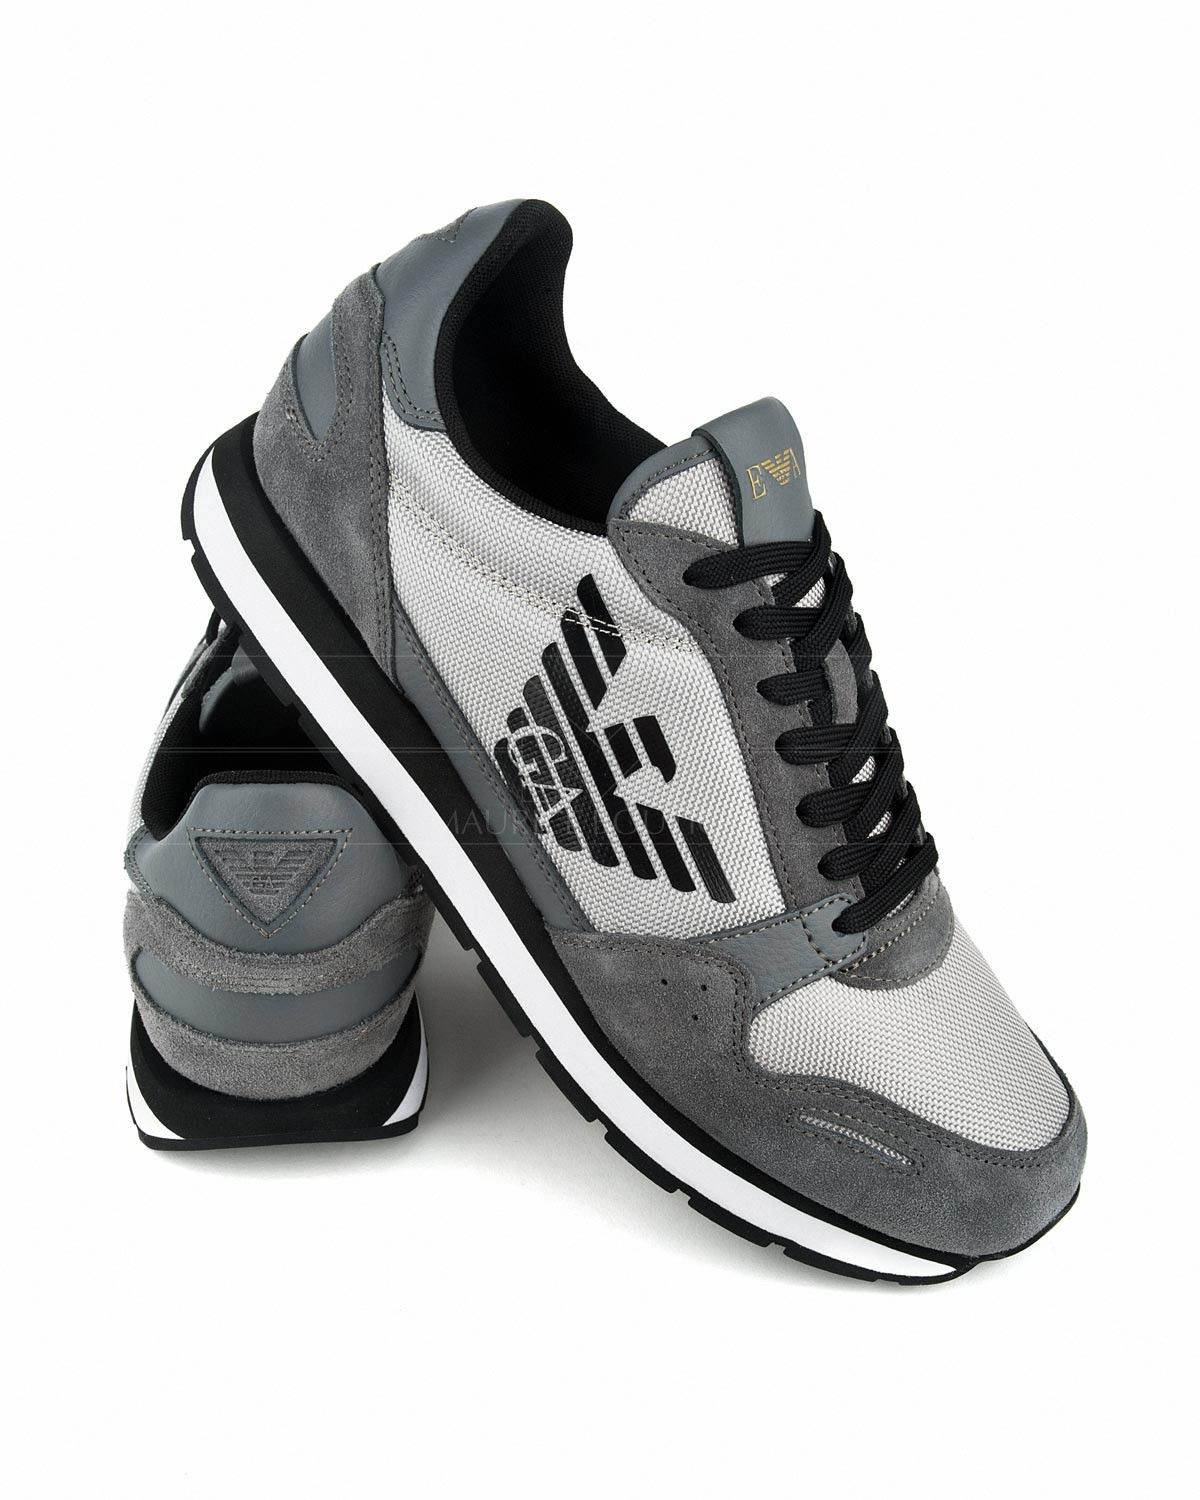 low priced 162da 7b2d5 Zapatillas EMPORIO ARMANI ® Gris   ENVIO GRATIS